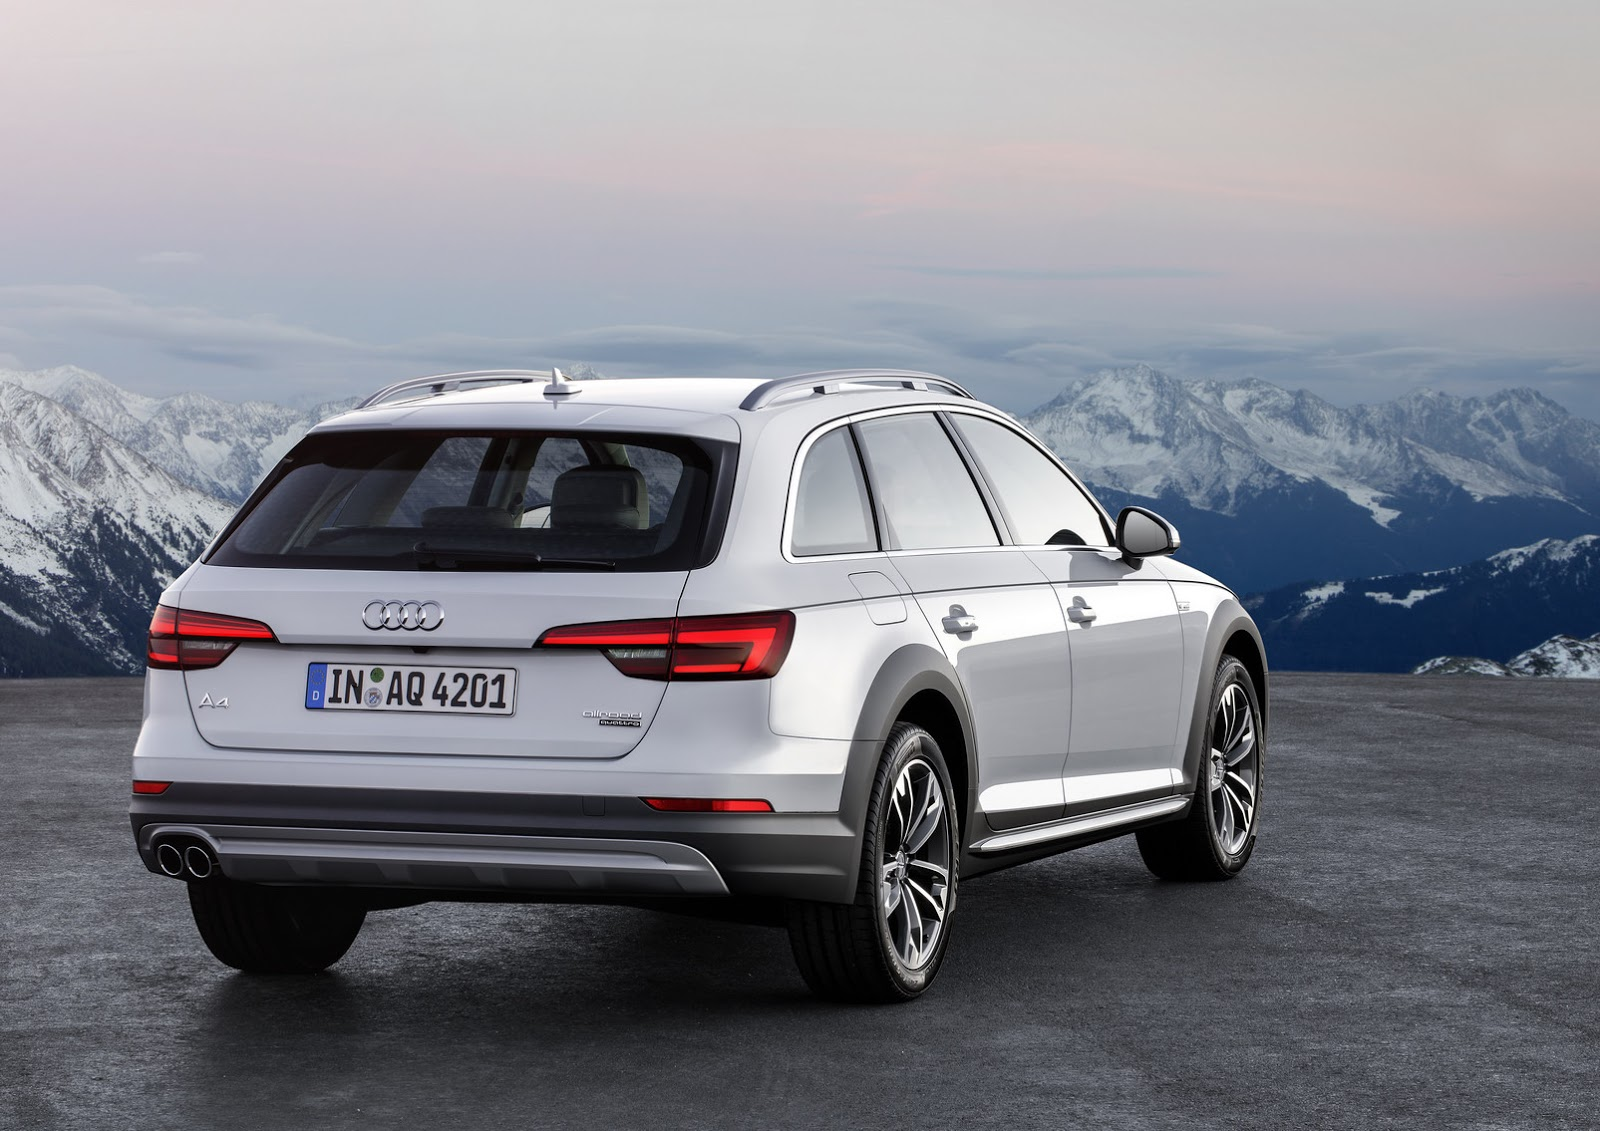 2017 Audi allroad quattro 2.7T photo - 3